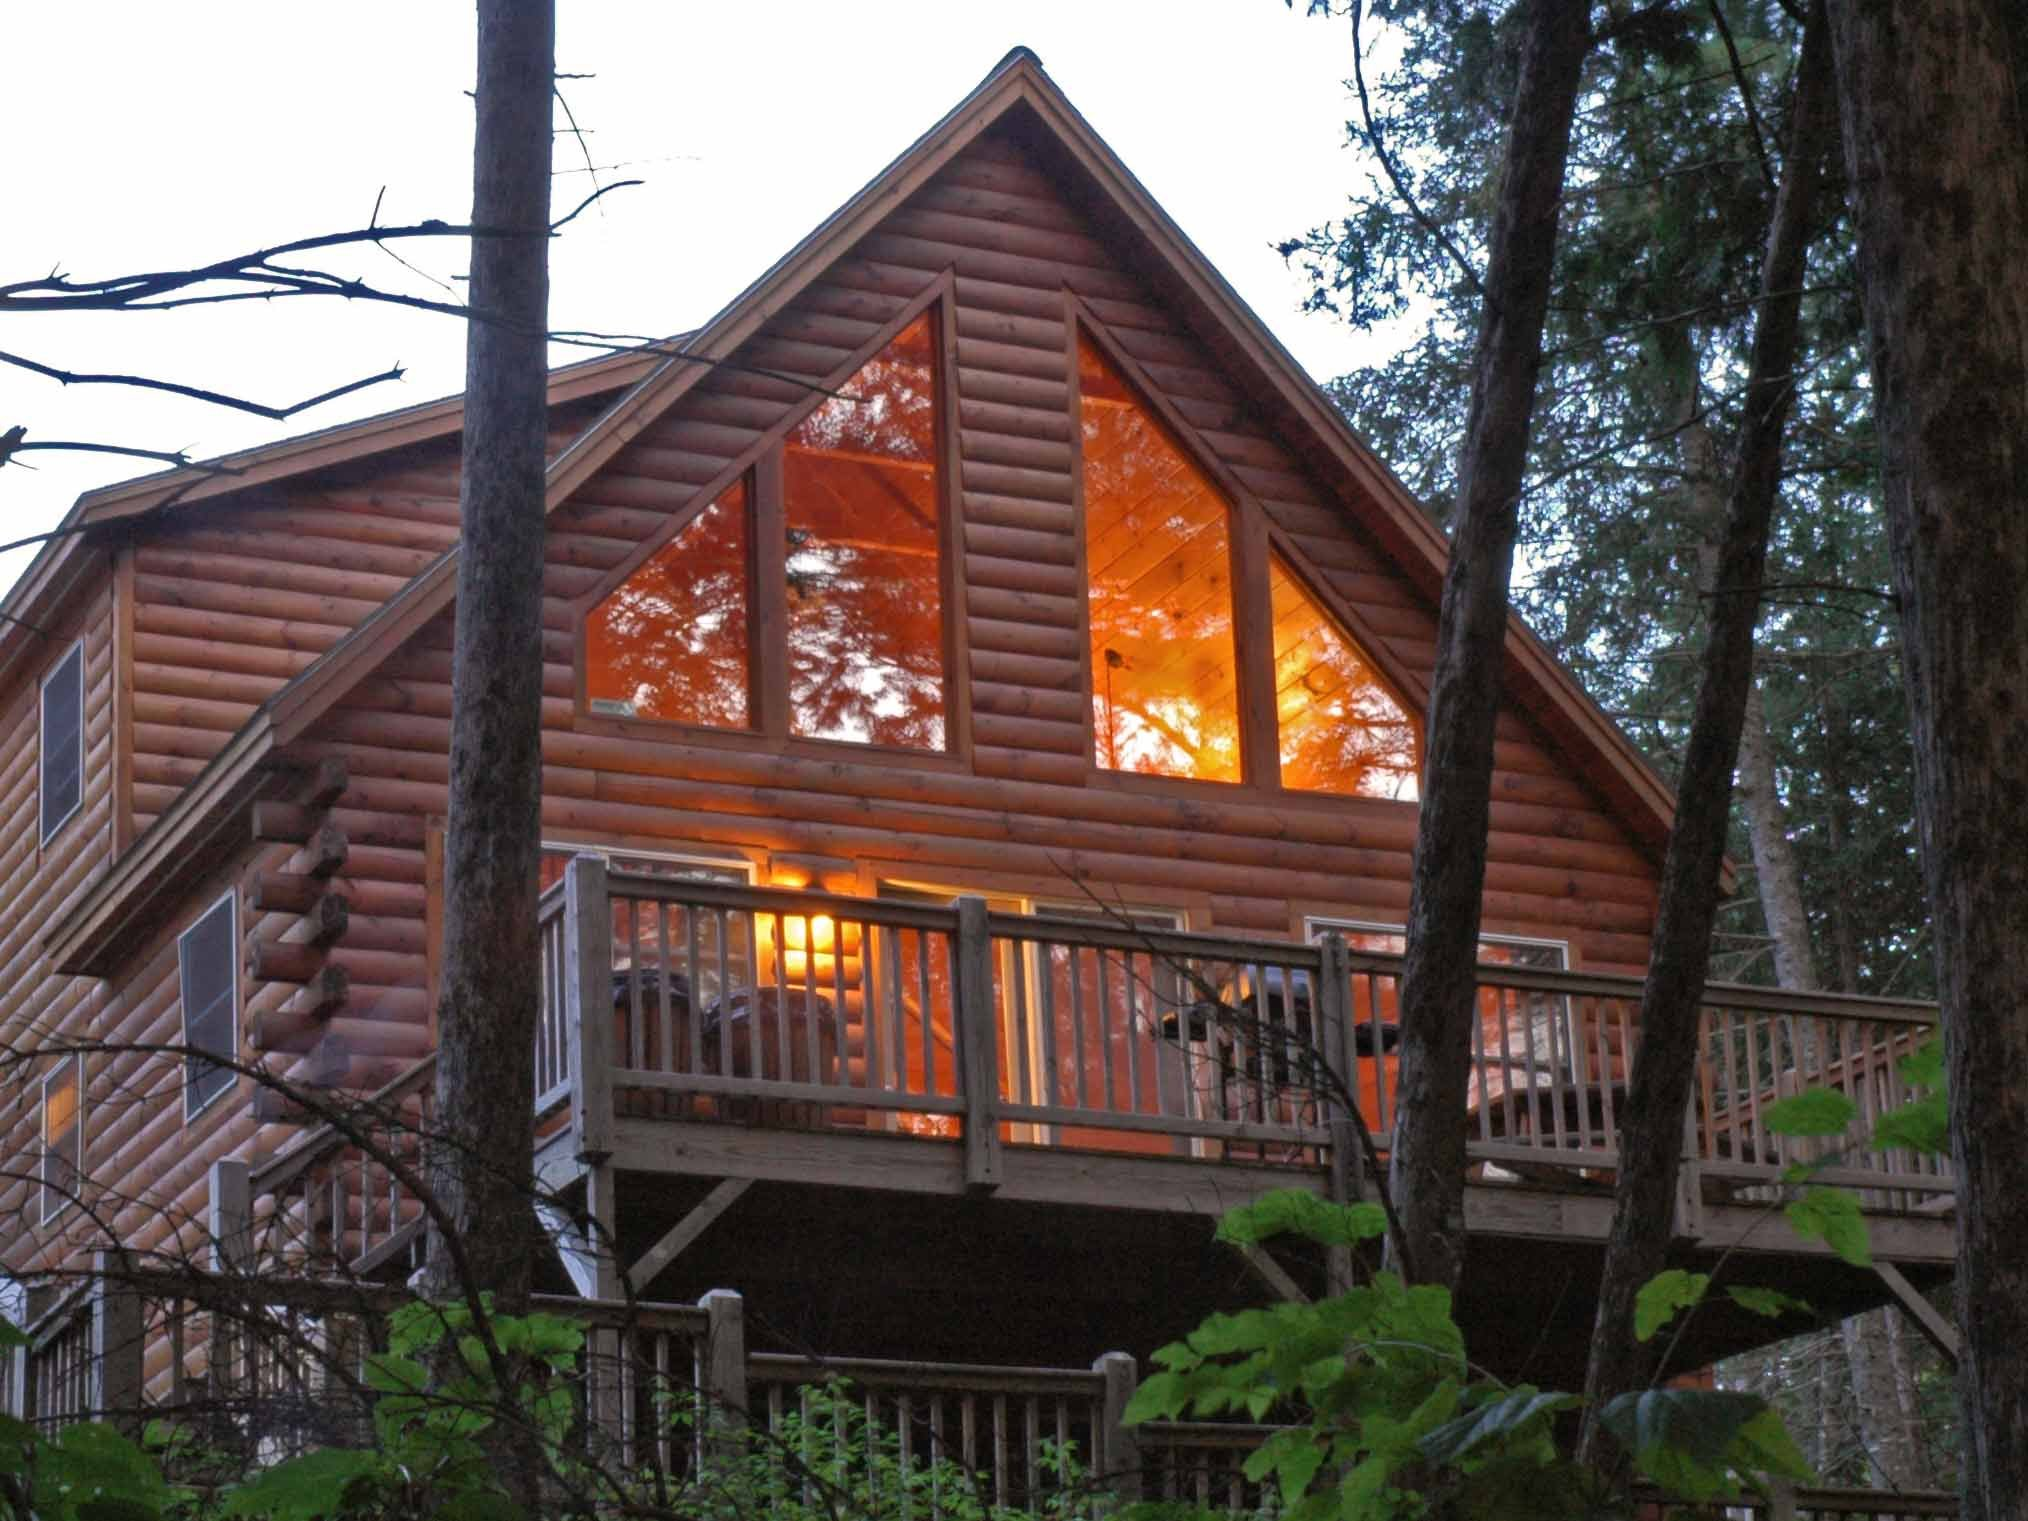 Black Bear is another popular large private cabin tucked in the woods and within walking distance of the lodge.